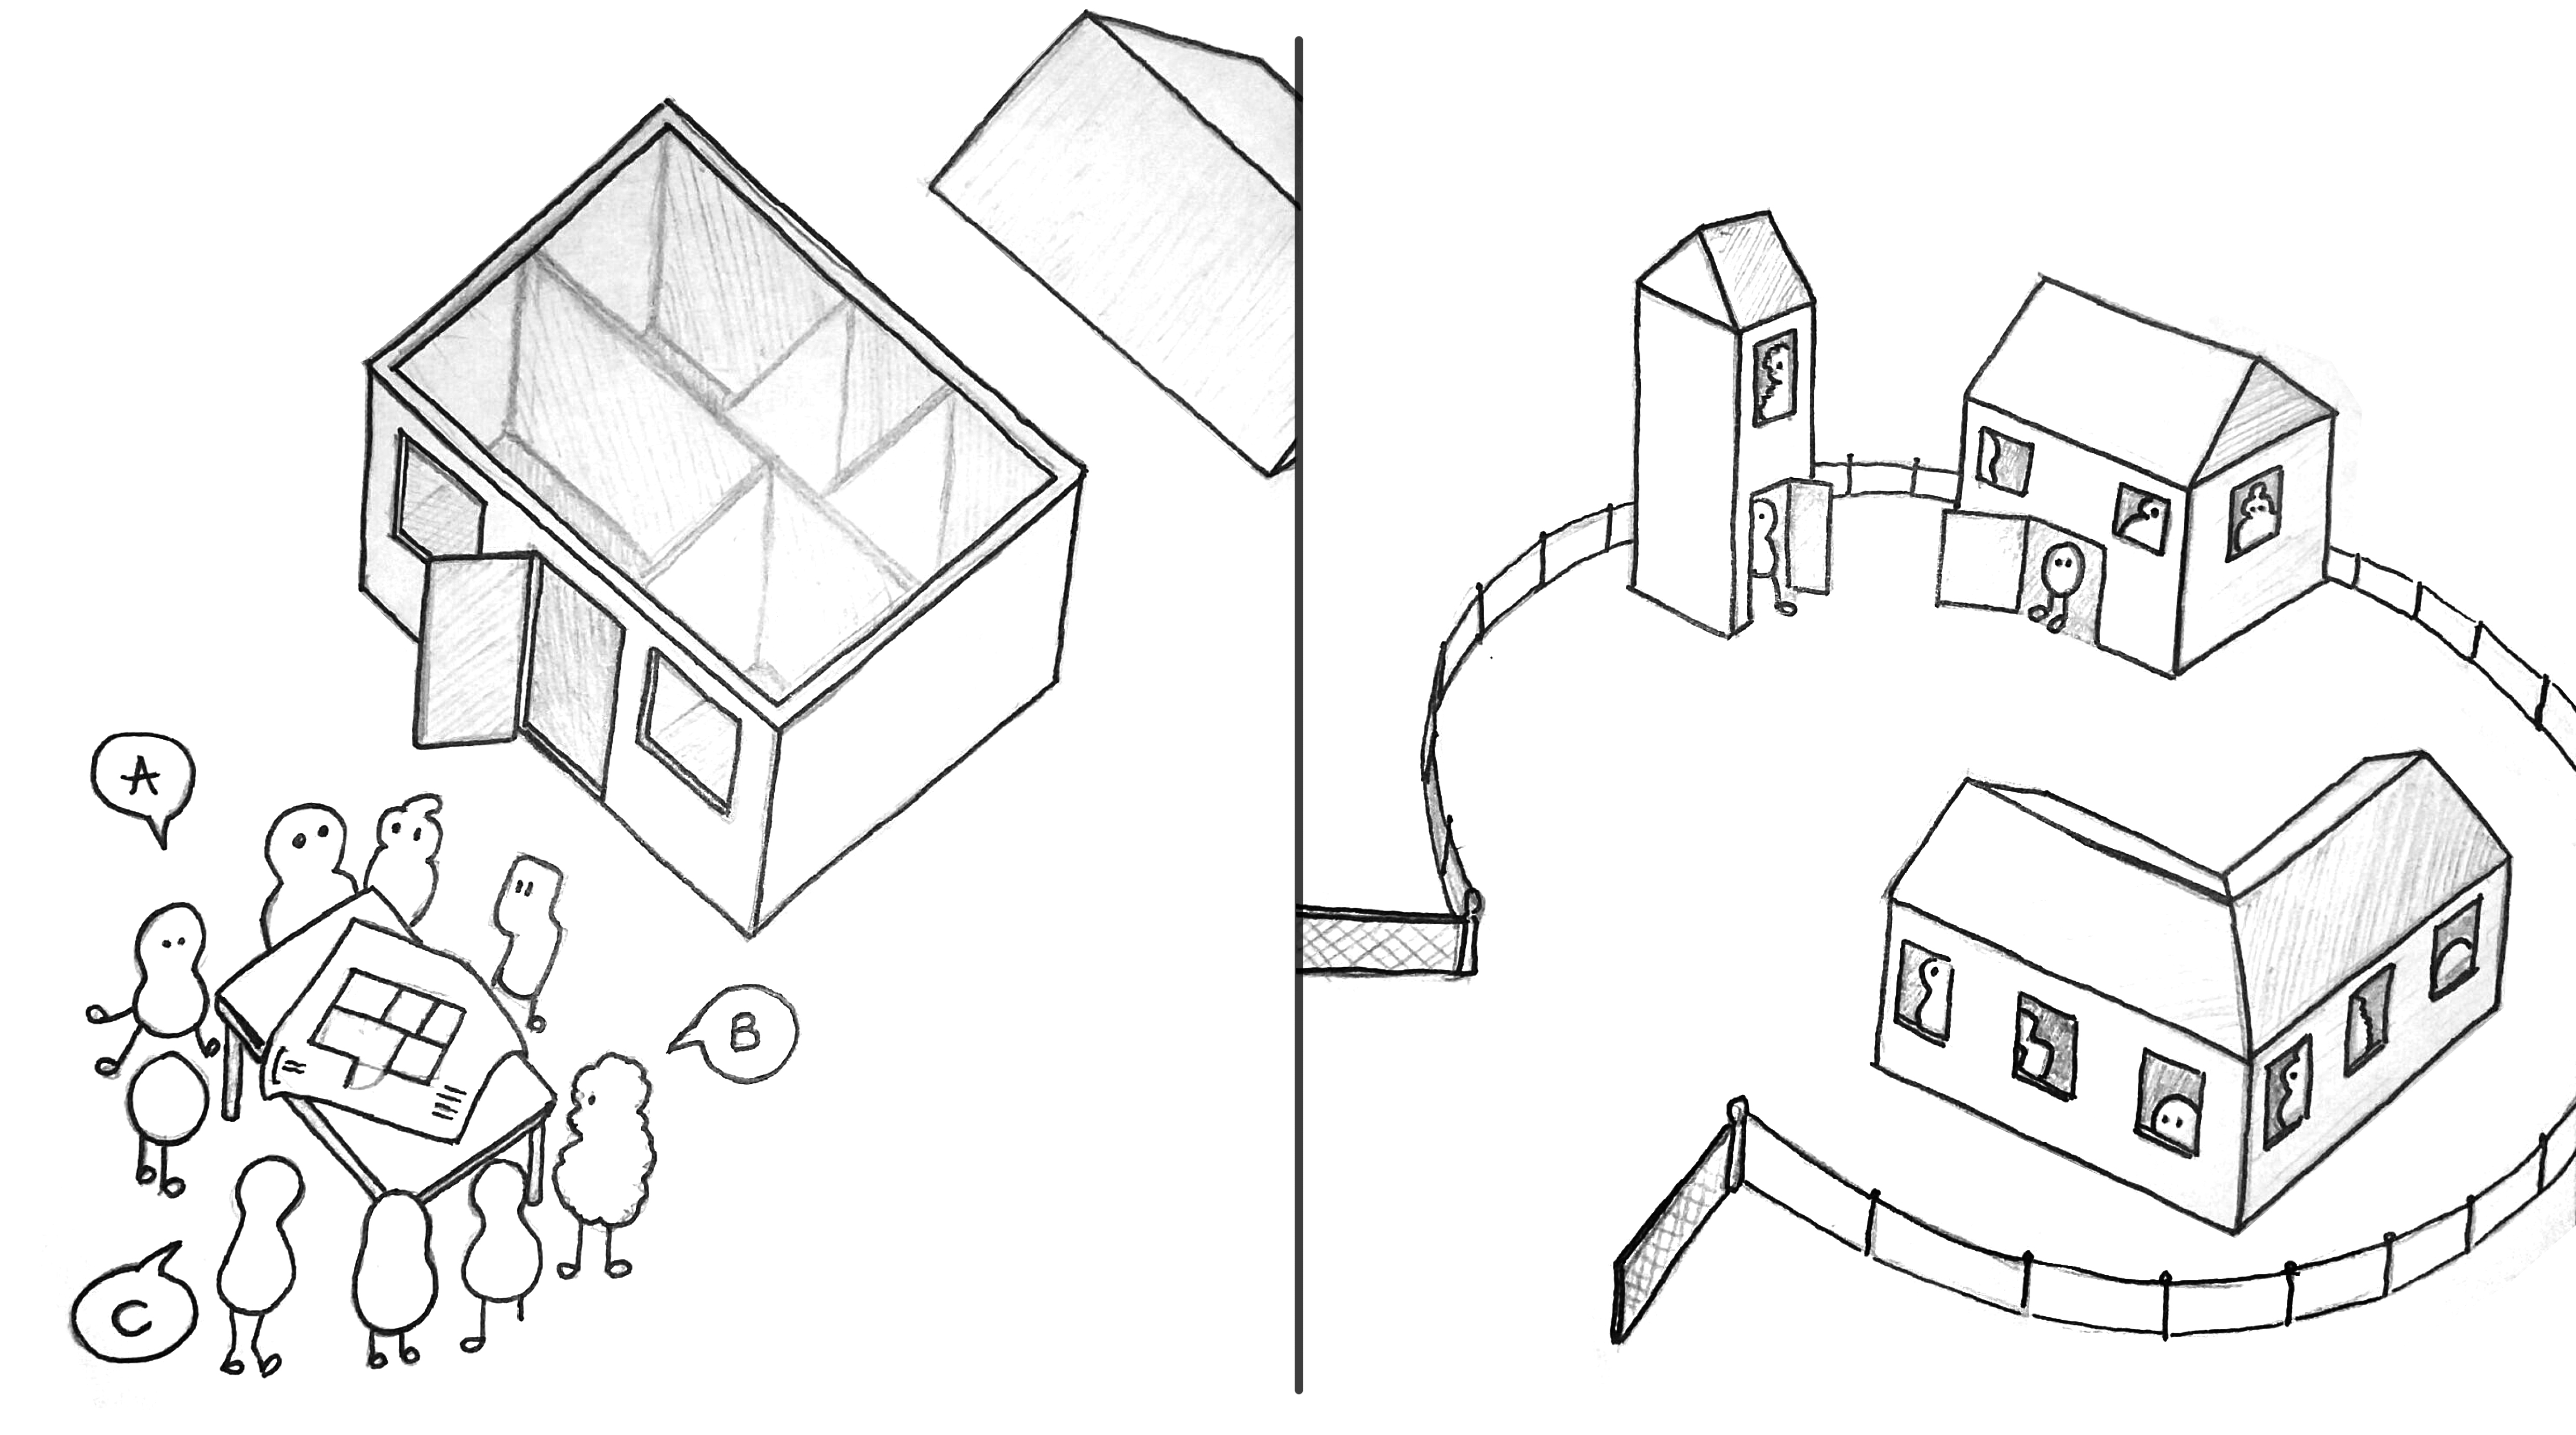 Illustration 1: All beings look together at how the house is built. Illustration 2: There are now different houses that fulfil everyones needs.